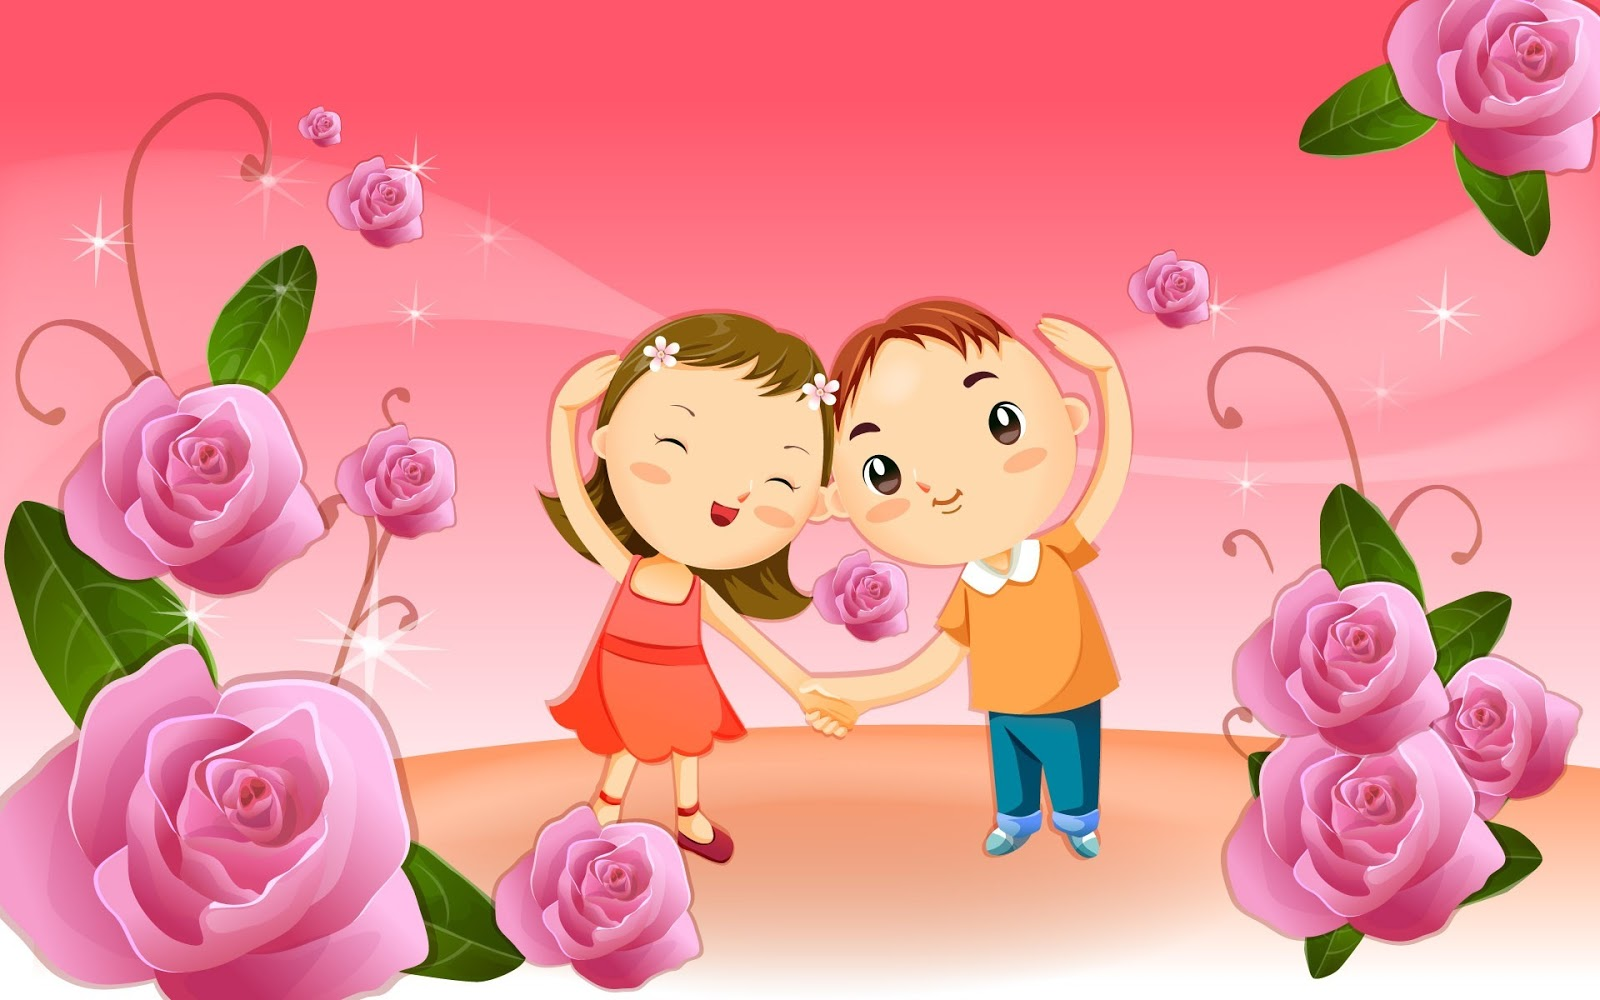 Free Download Romantic Love Images Wallpapers and Pictures ...